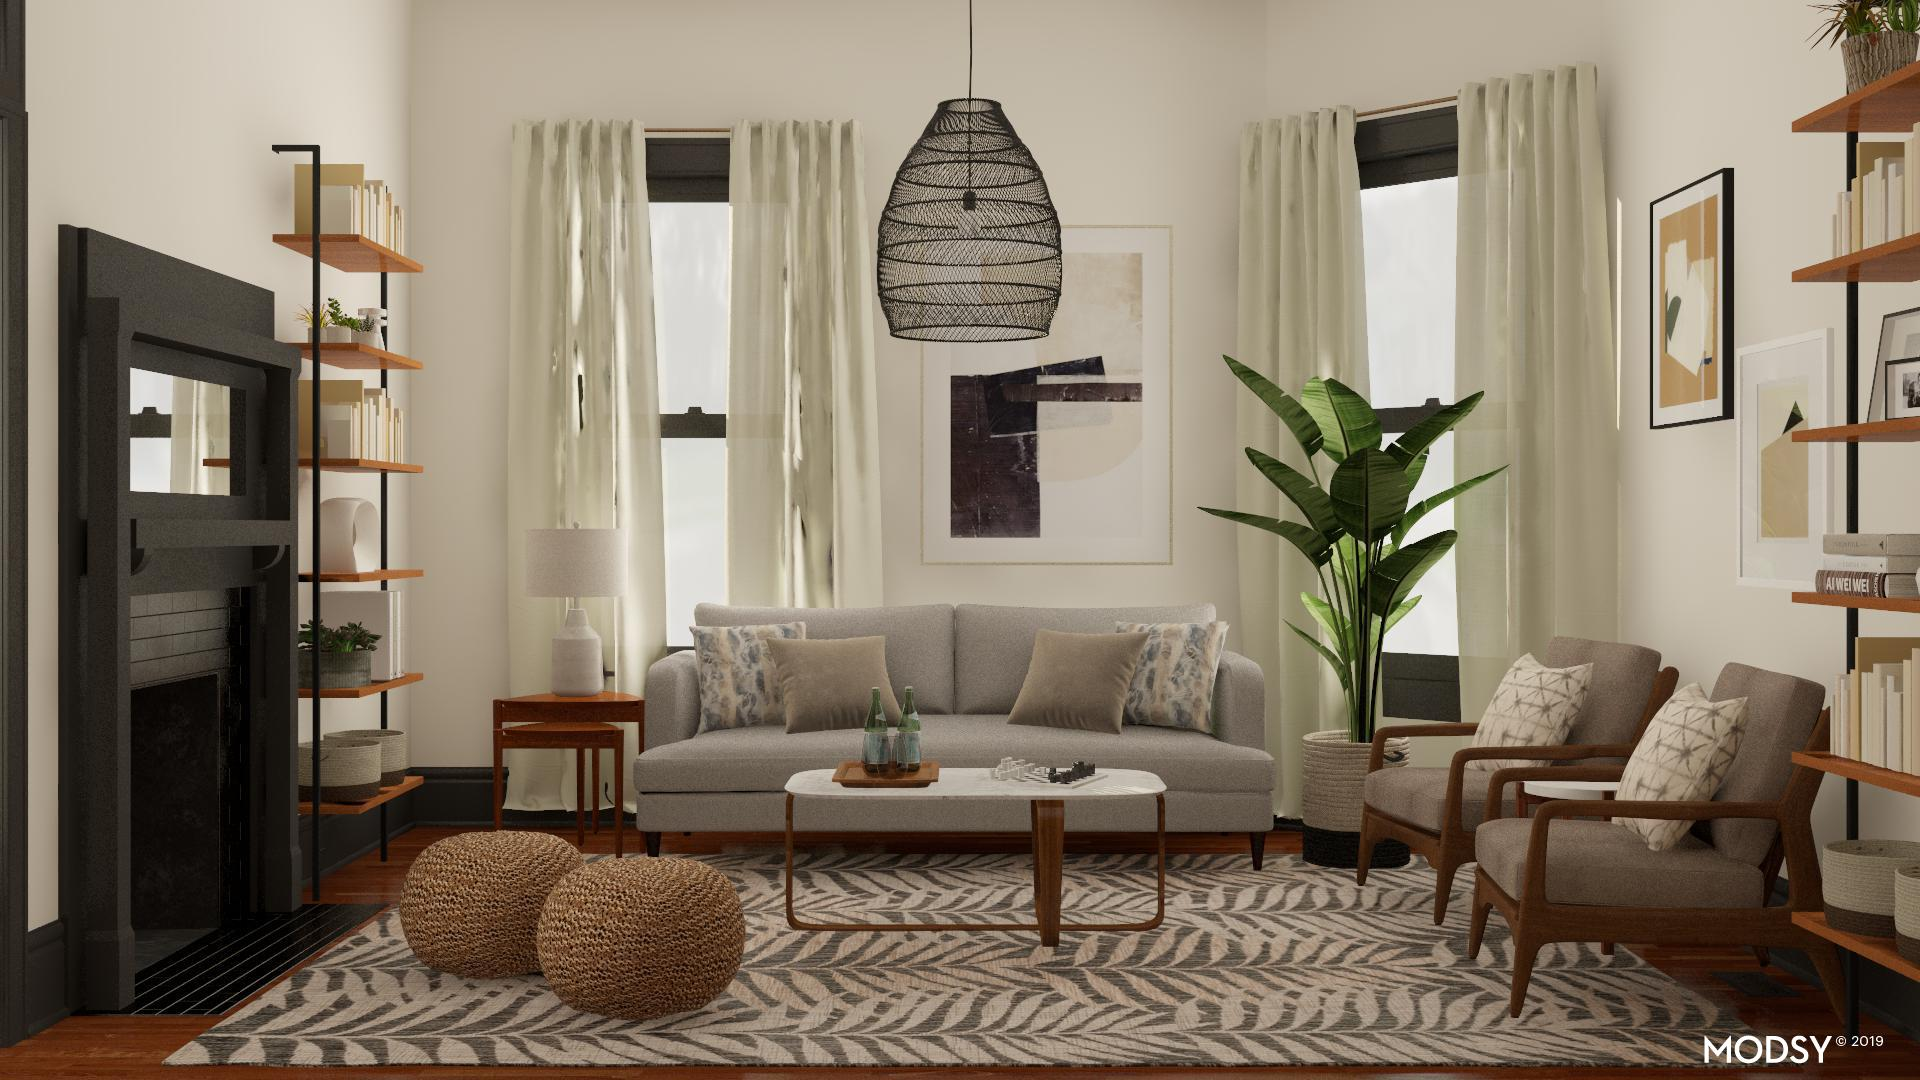 Eclectic Living Room Design Ideas And Styles From Modsy Designers